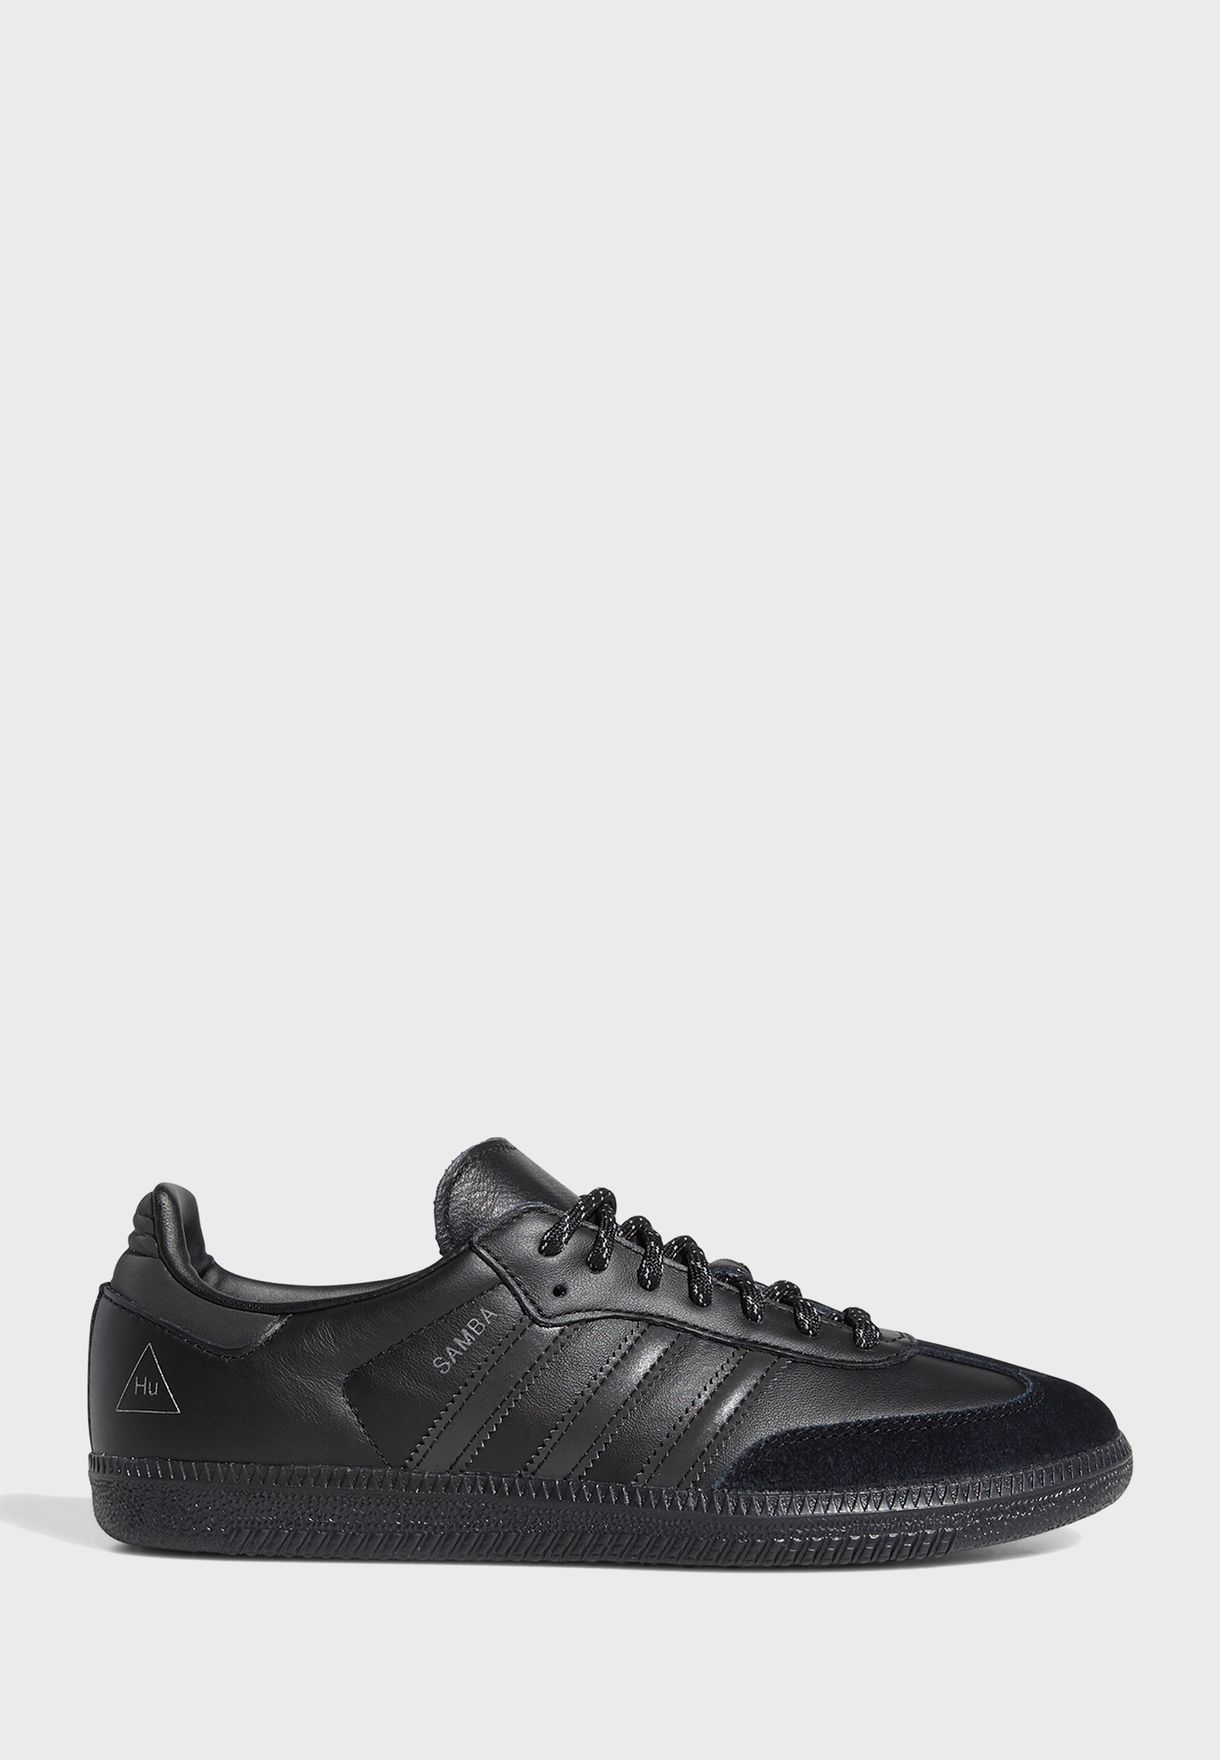 Surrey mesa A menudo hablado  Buy adidas Originals black Pharrell Williams Samba for Men in MENA,  Worldwide | GY4978